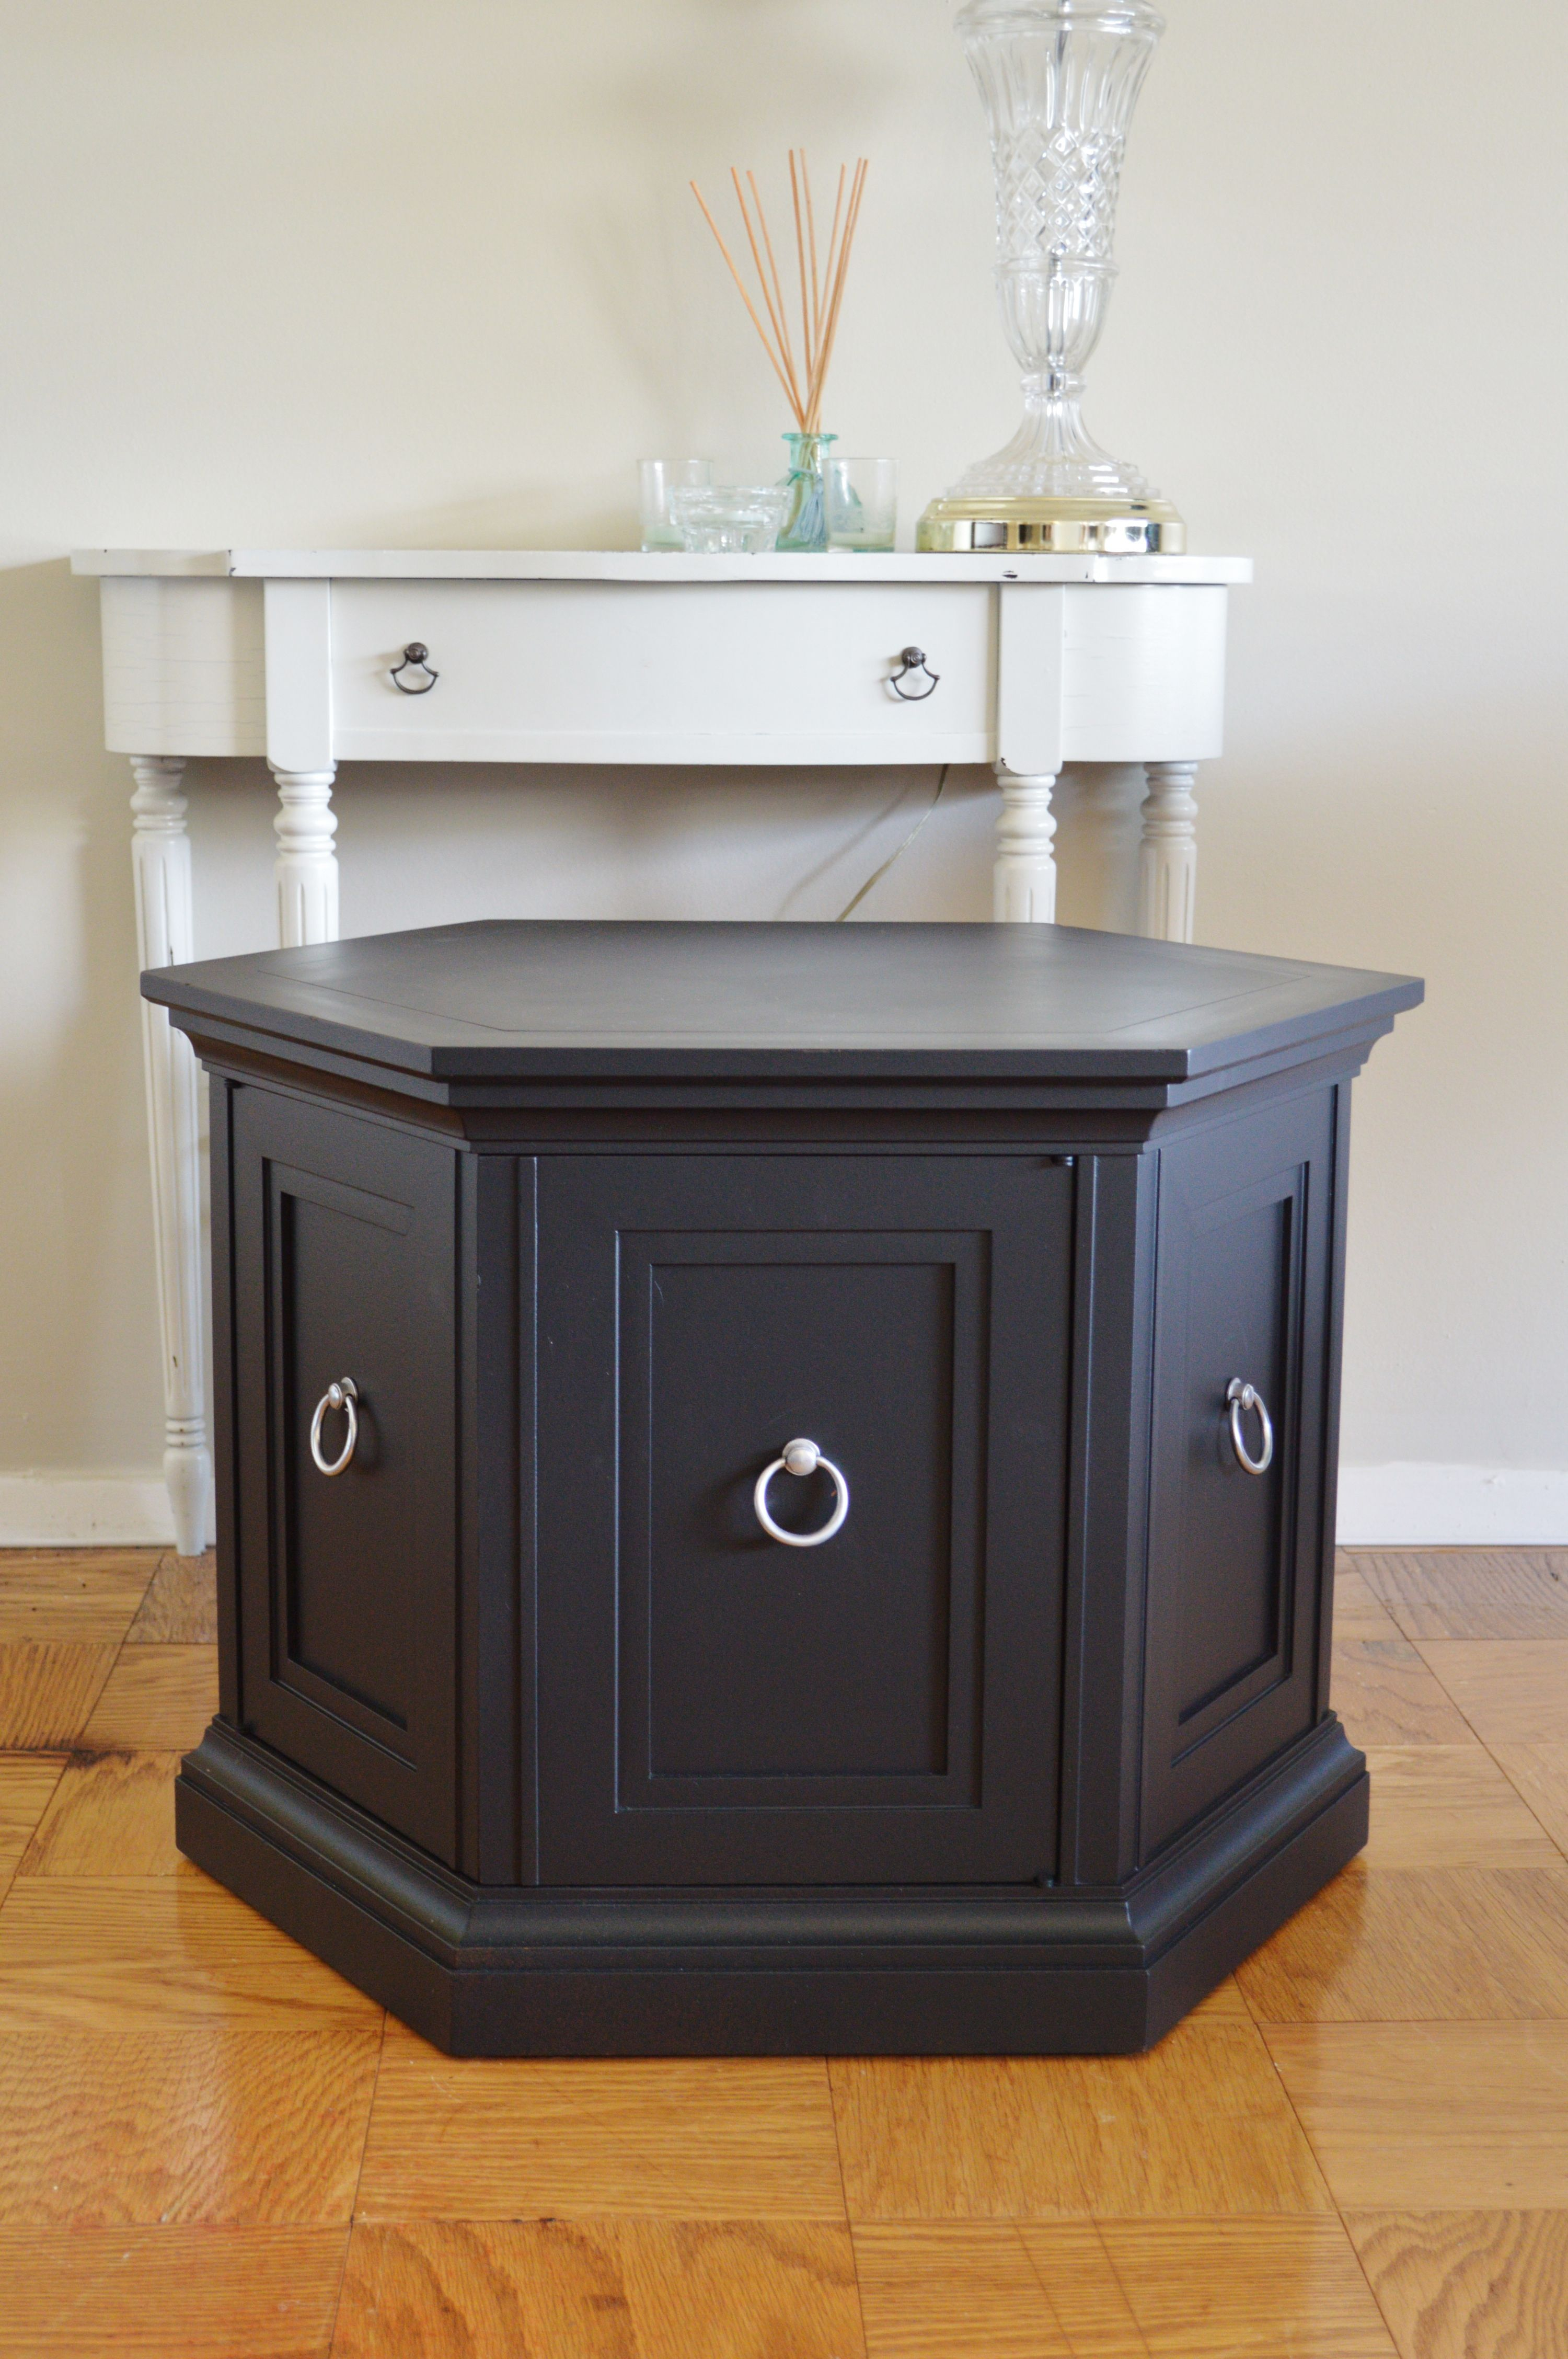 End Table Paint Ideas End Table Painted With Diy Chalk Paint Painted Furniture